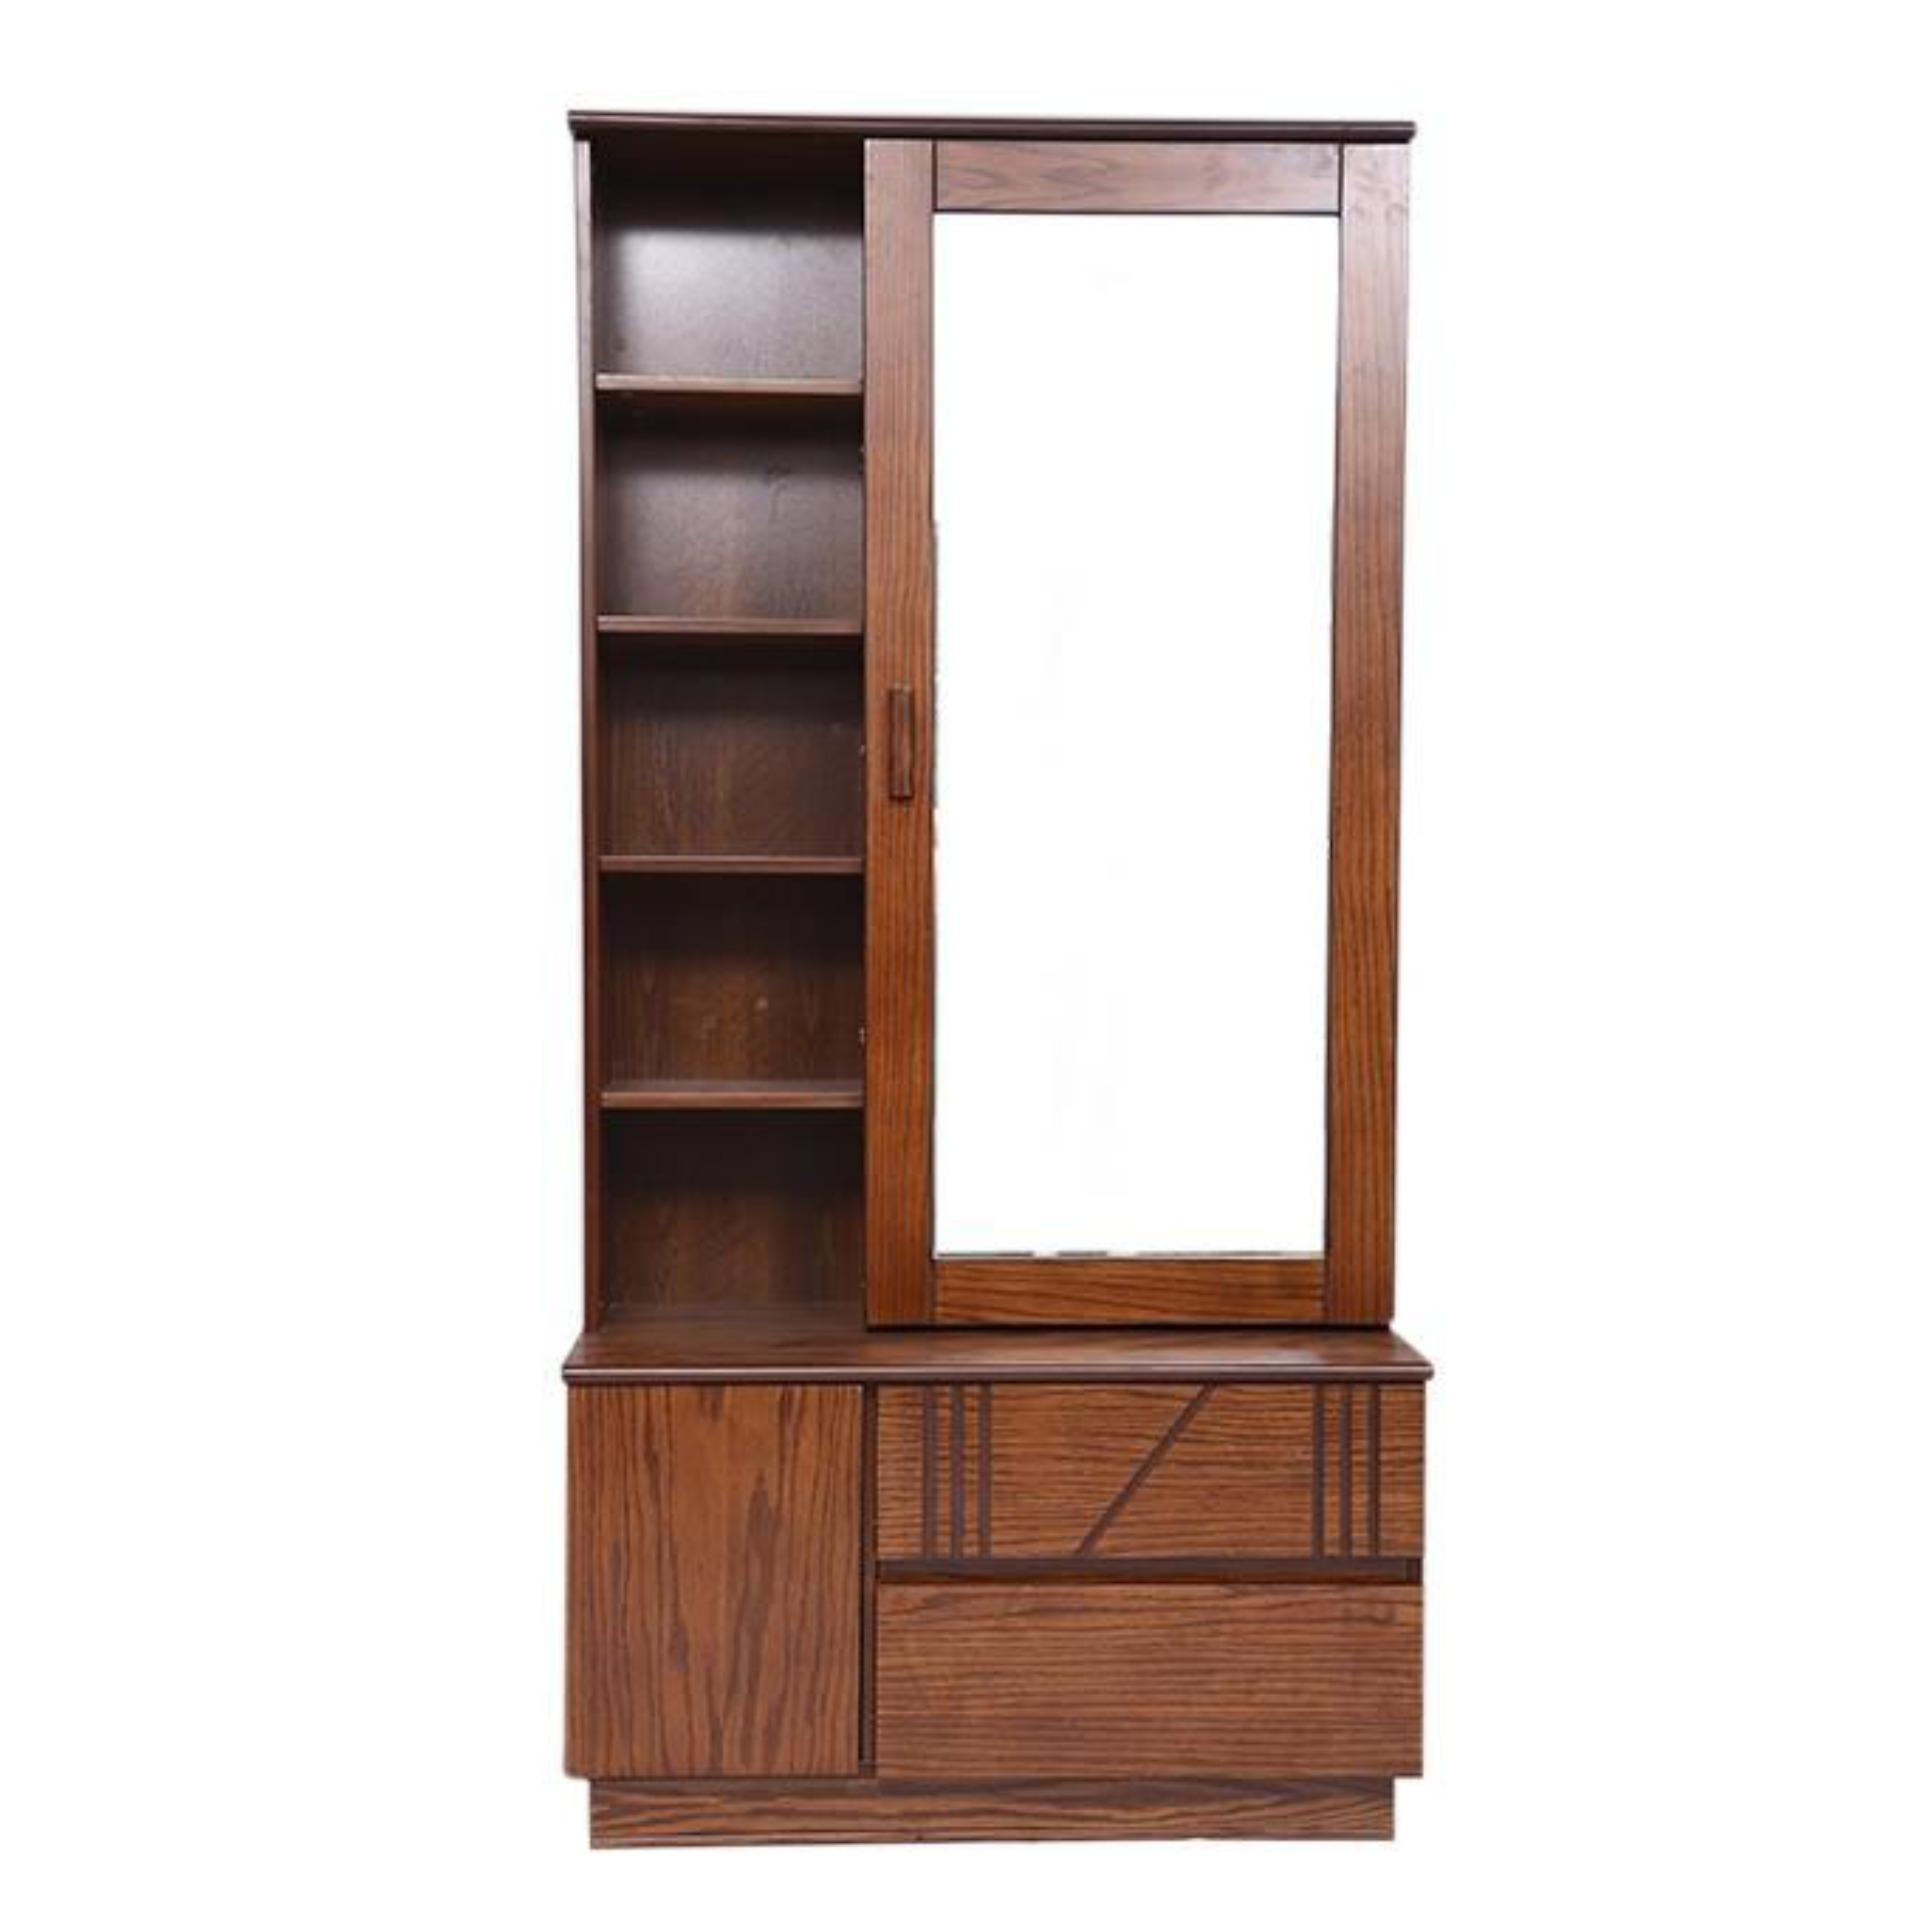 Buy Hatim Furniture Home Dressers Drawers At Best Prices Online In